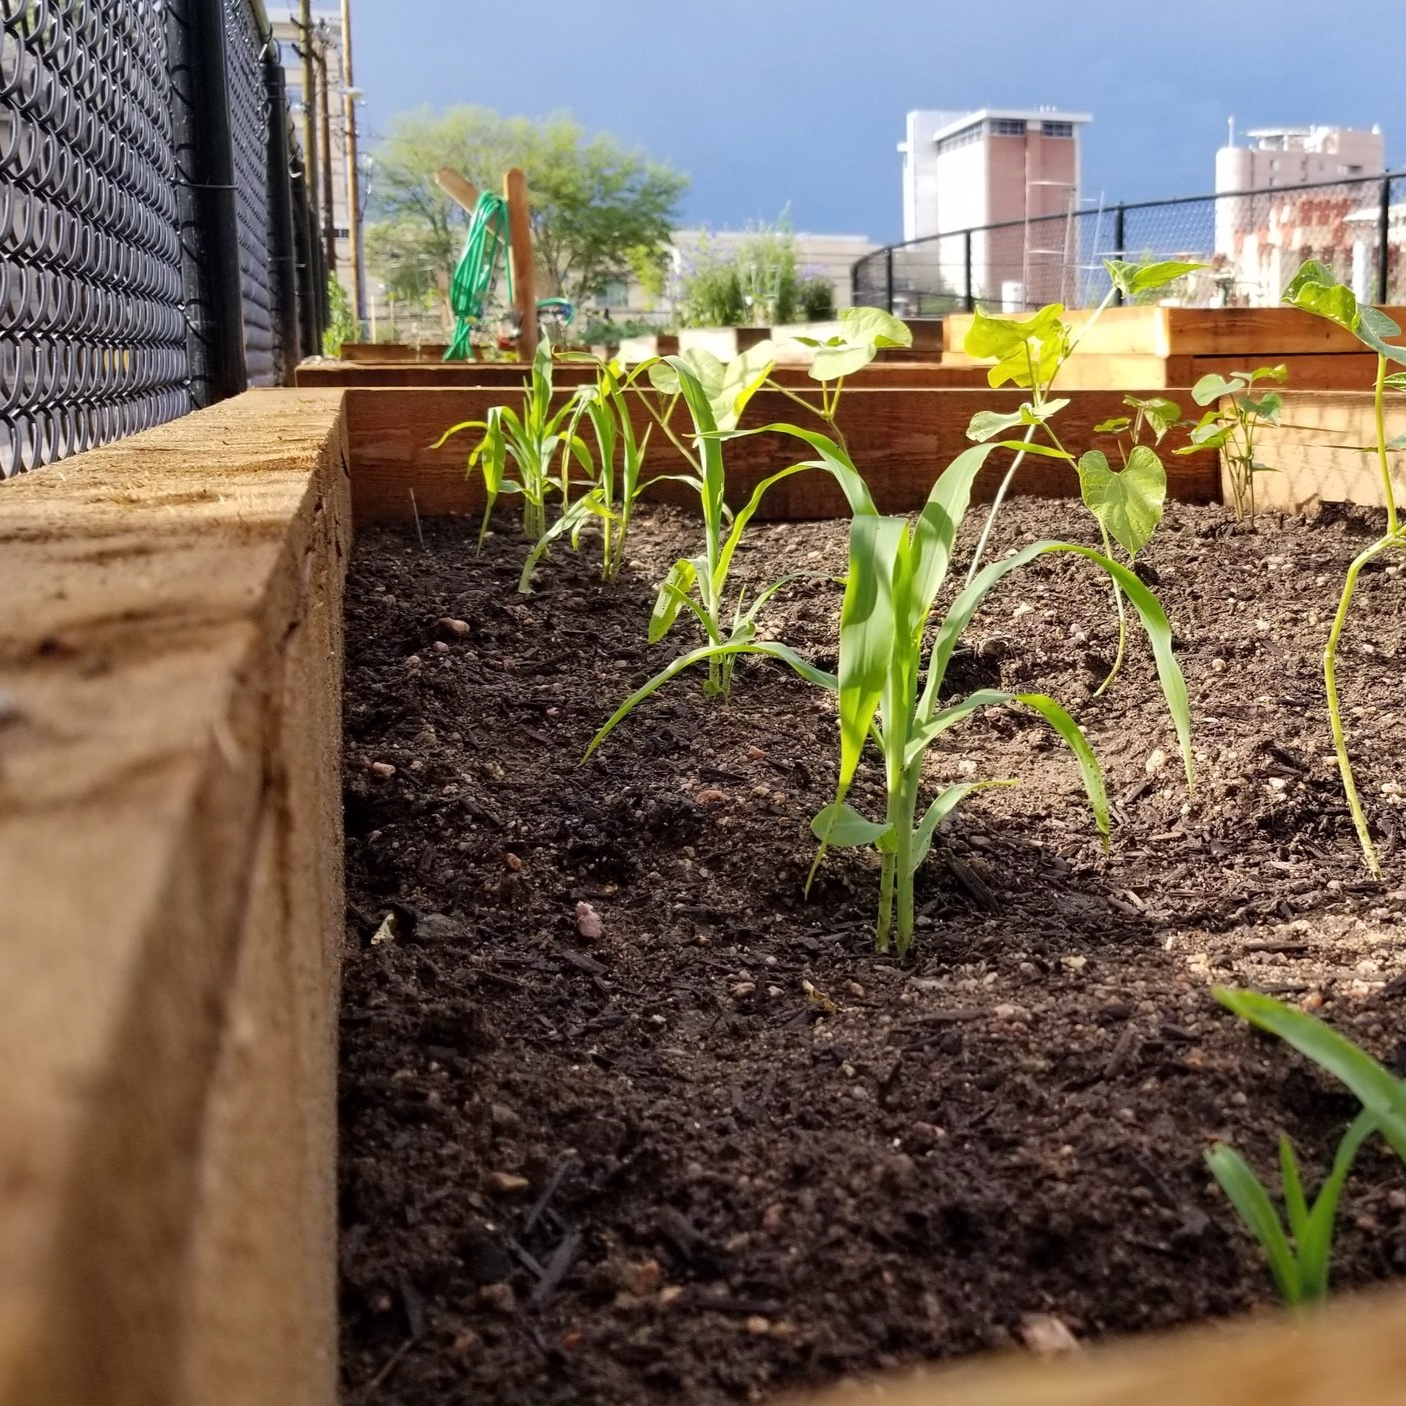 Urban Gardening: - Through urban gardening, Metro Caring's community members have an opportunity to not only learn a new skill but to expand their creativity. We've even turned a freight train into a garden. And we're not done yet.